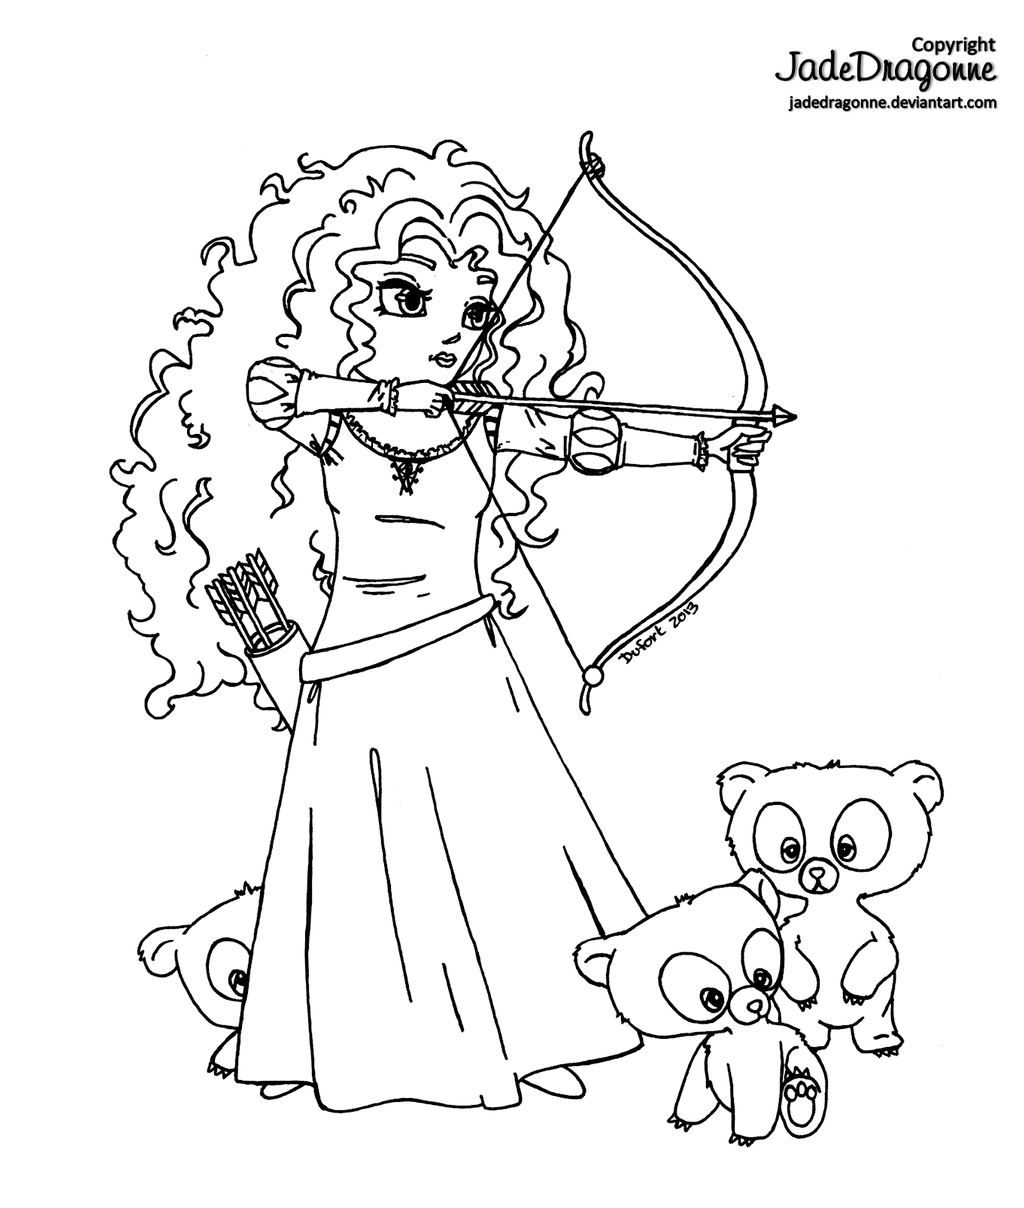 Merida from brave lineart by jadedragonne on deviantart for Coloring pages merida